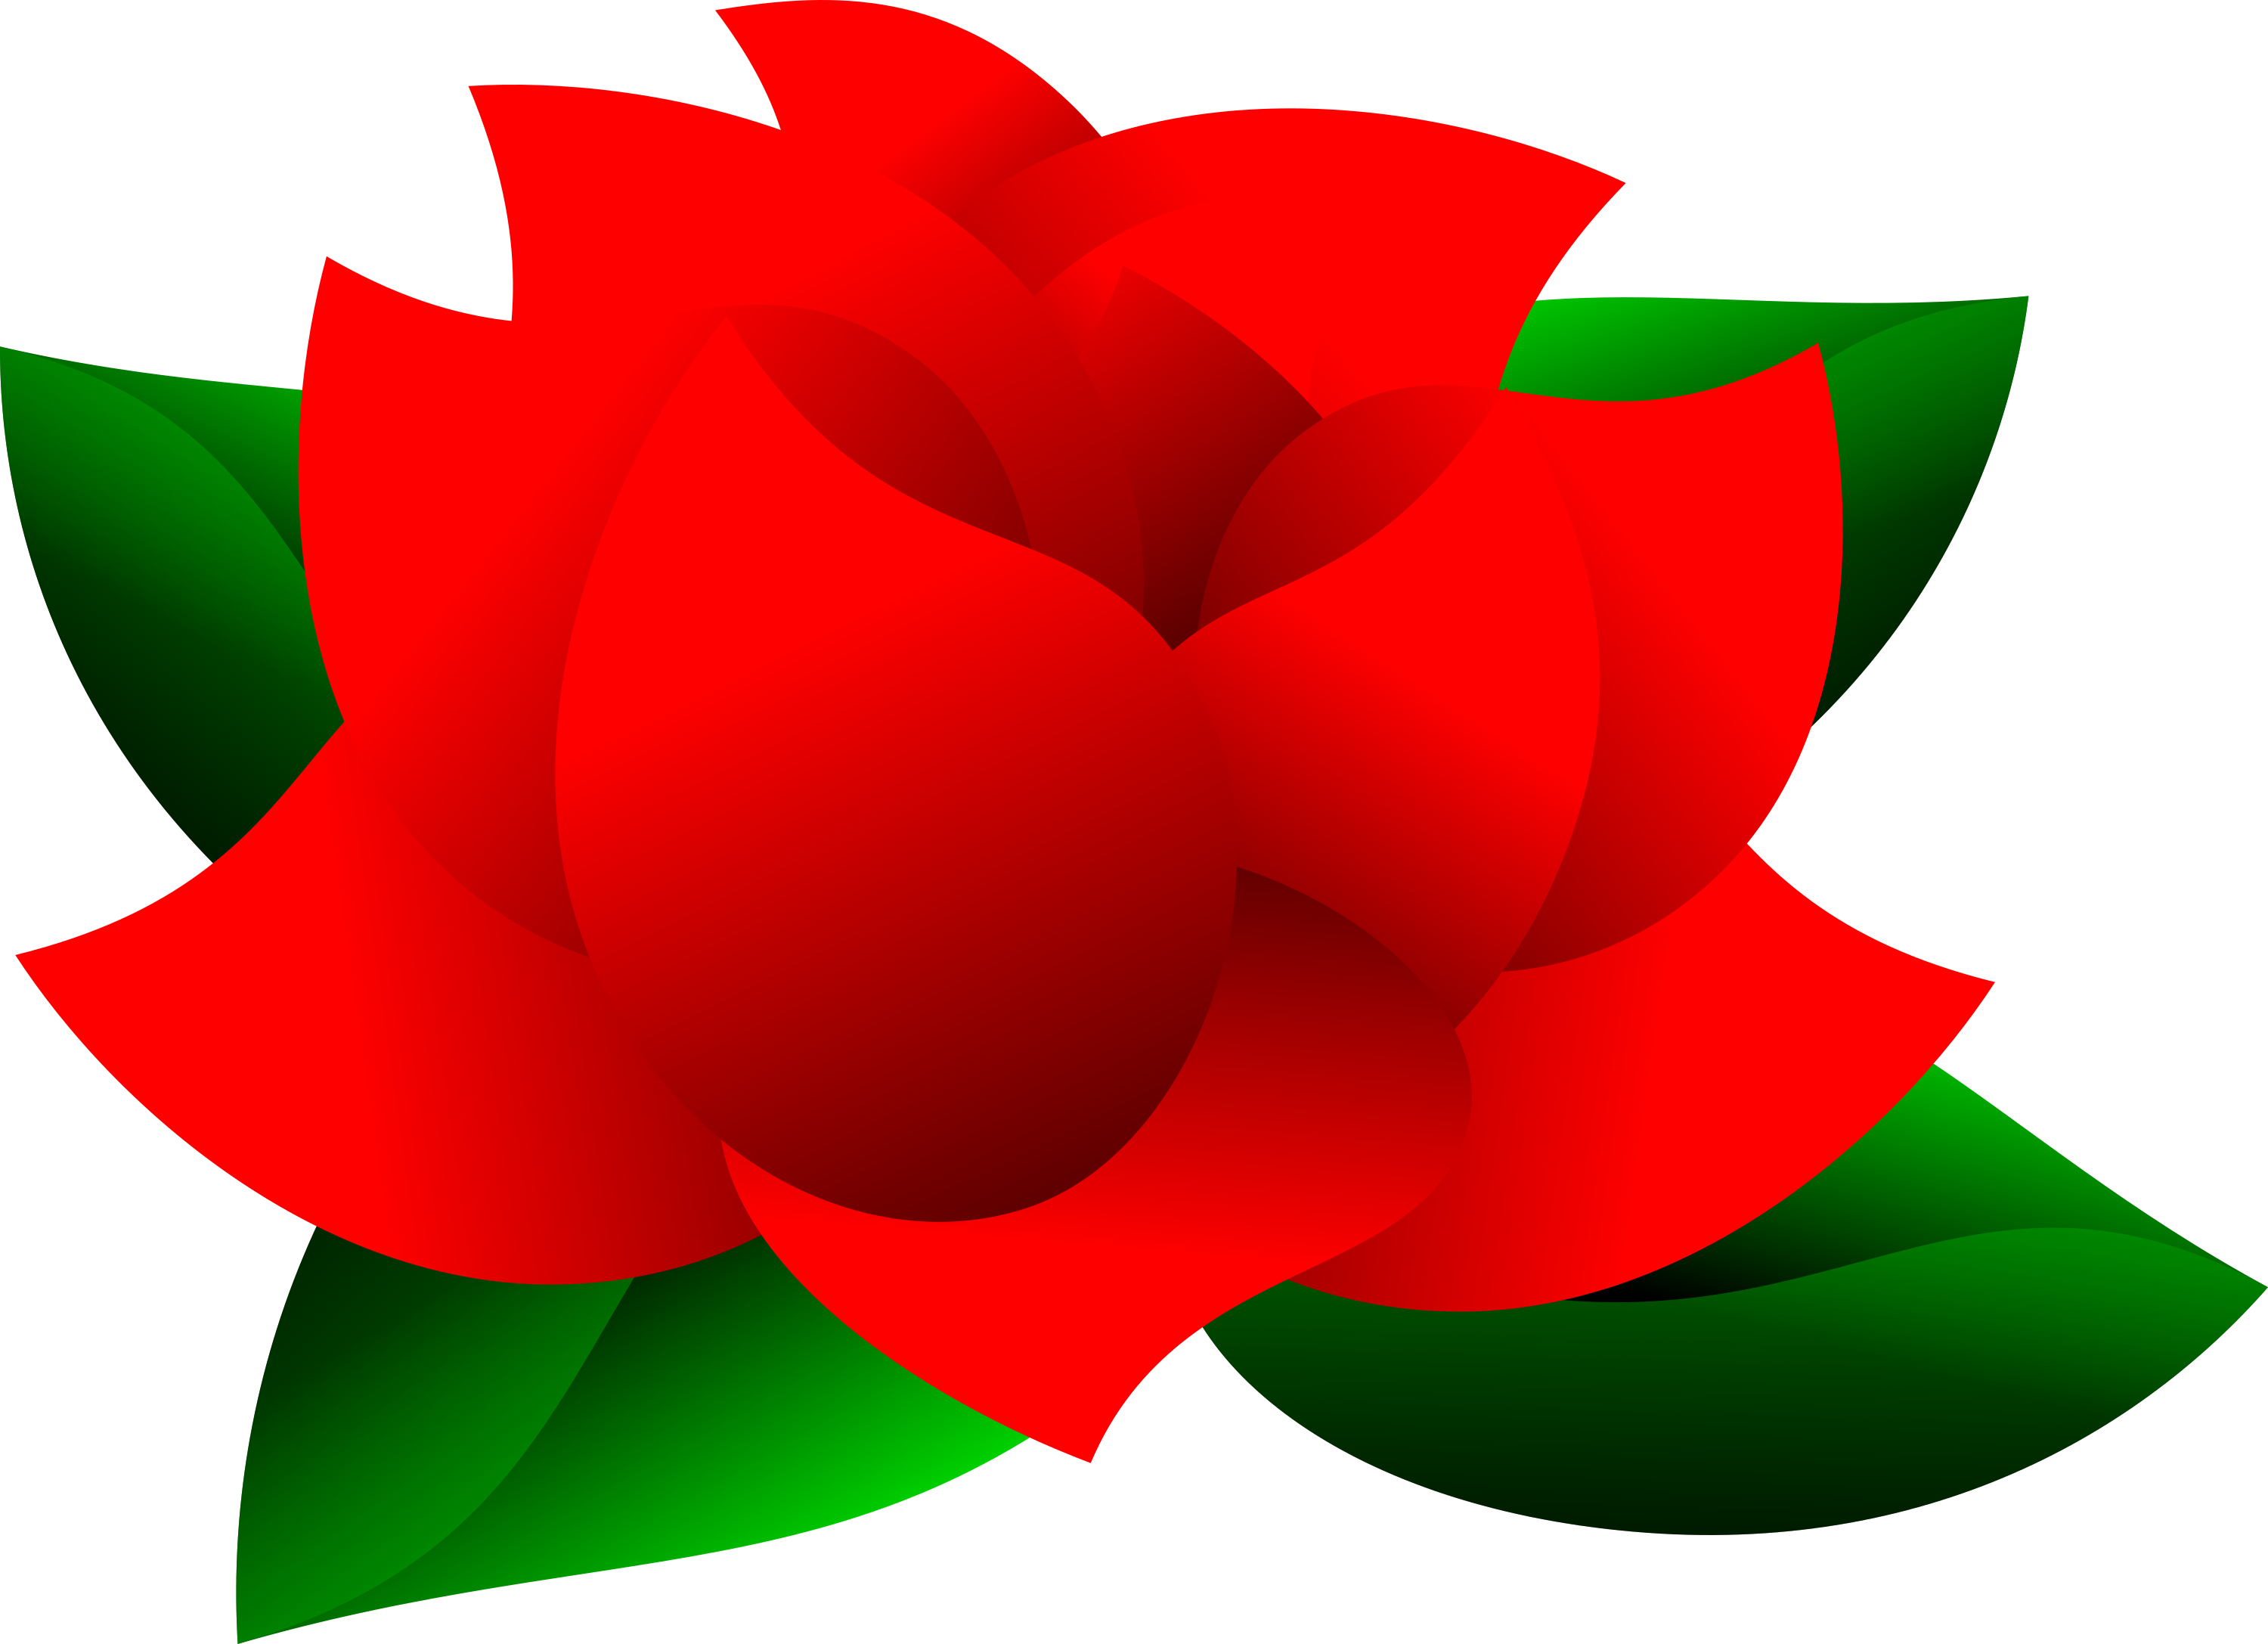 Beautiful Red Rose with Green Leaves Clipart.